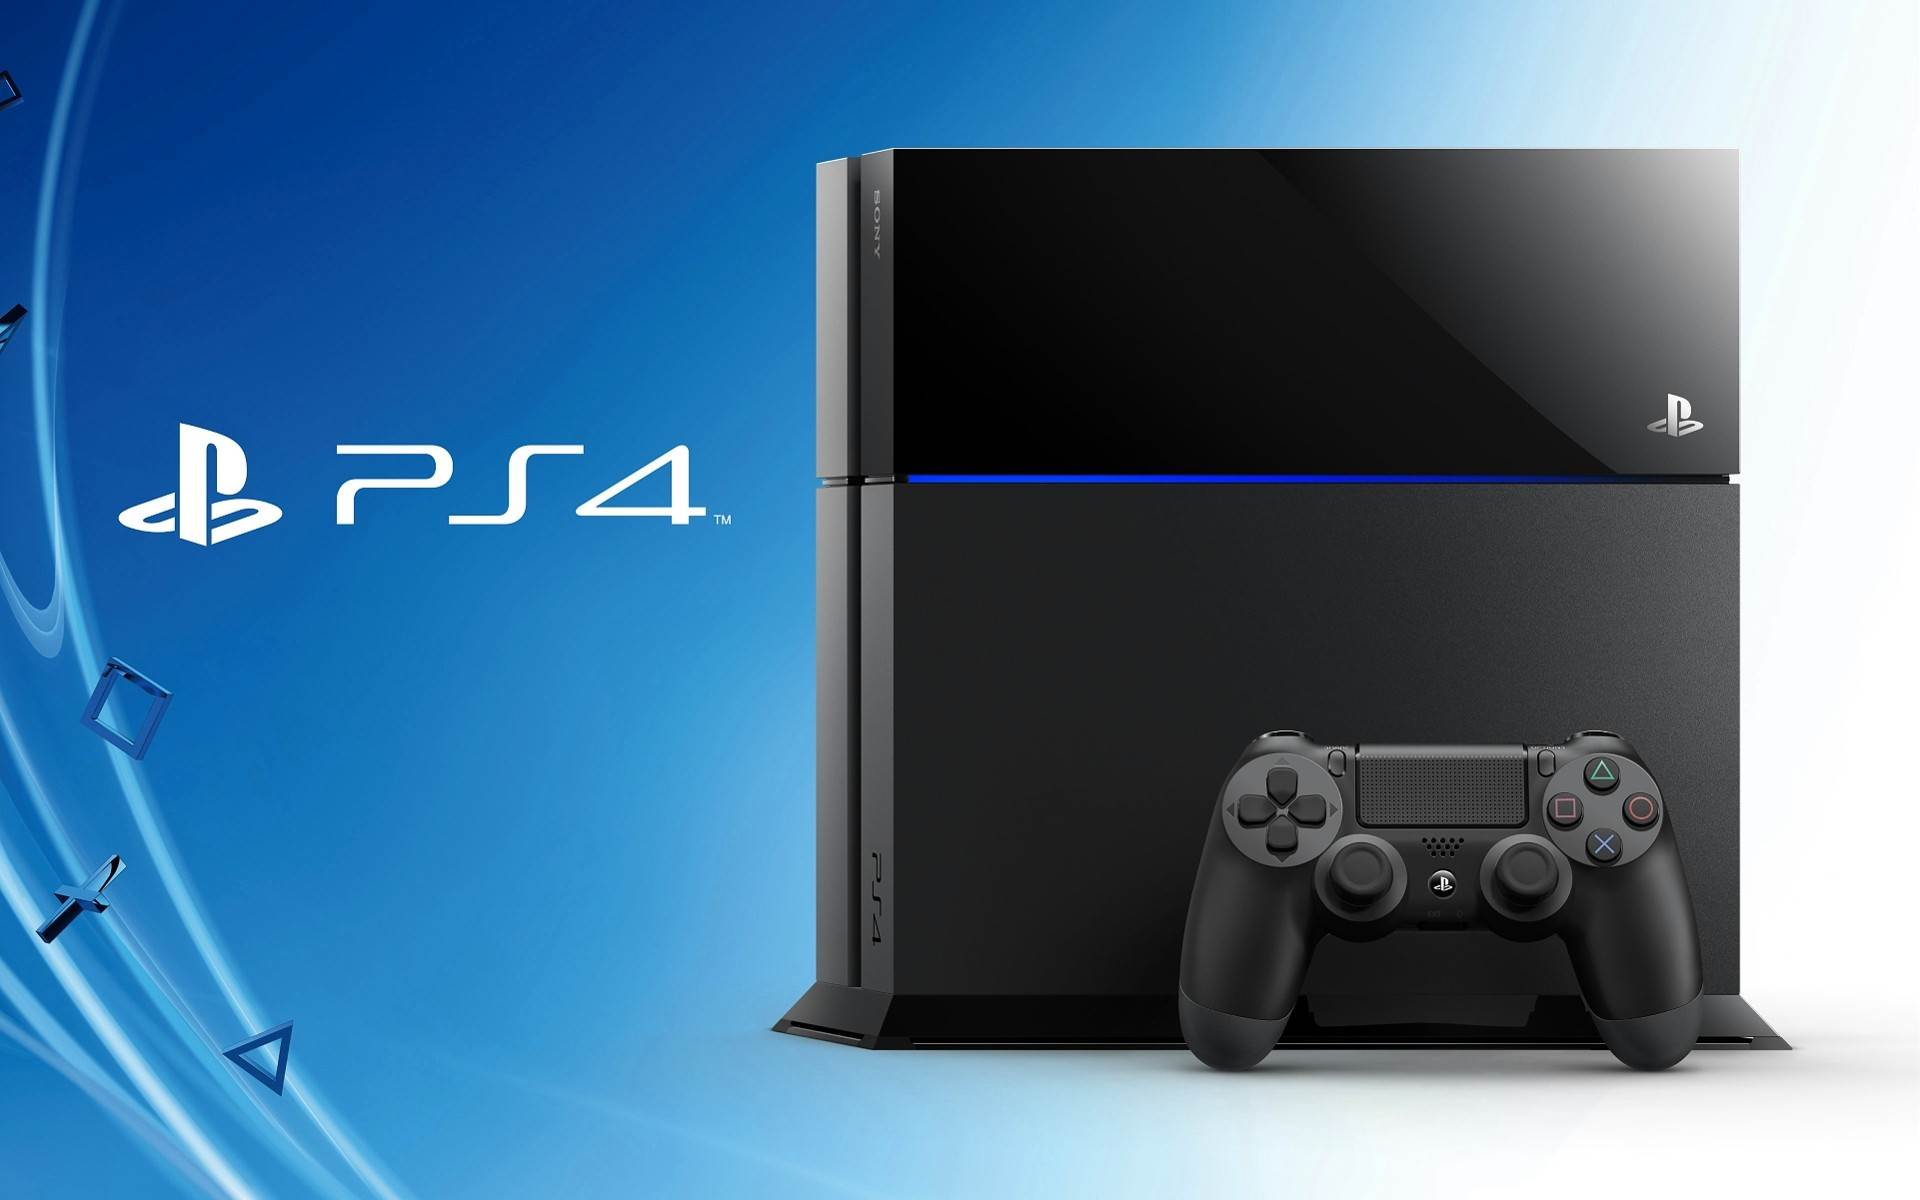 Sony Playstation 4 to release on November 15, 2013!